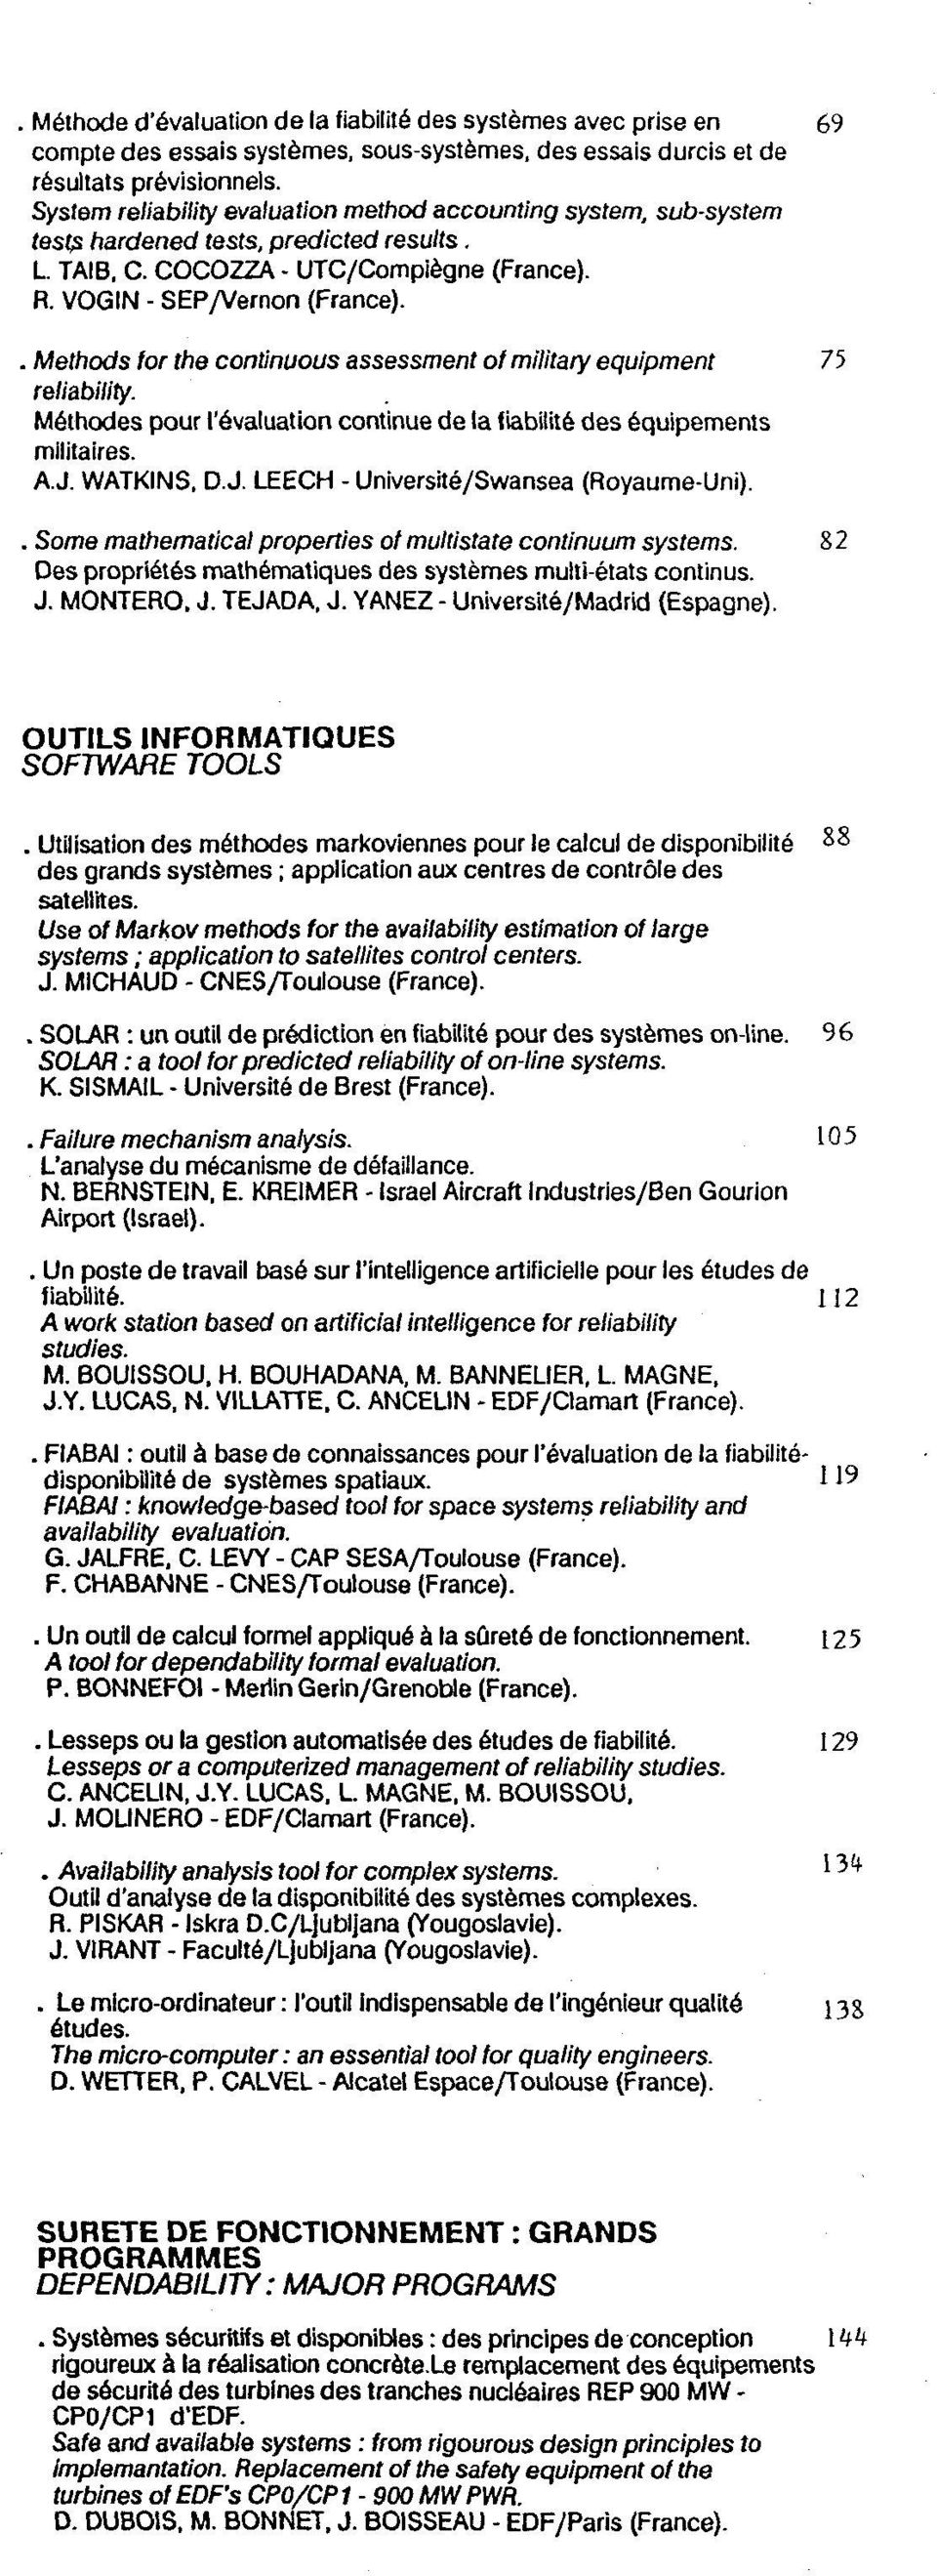 . Methods for the continuous assessment of military equipment 75 reliability. Methodes pour revaluation continue de la fiabitite des equipements militaires. A.J.